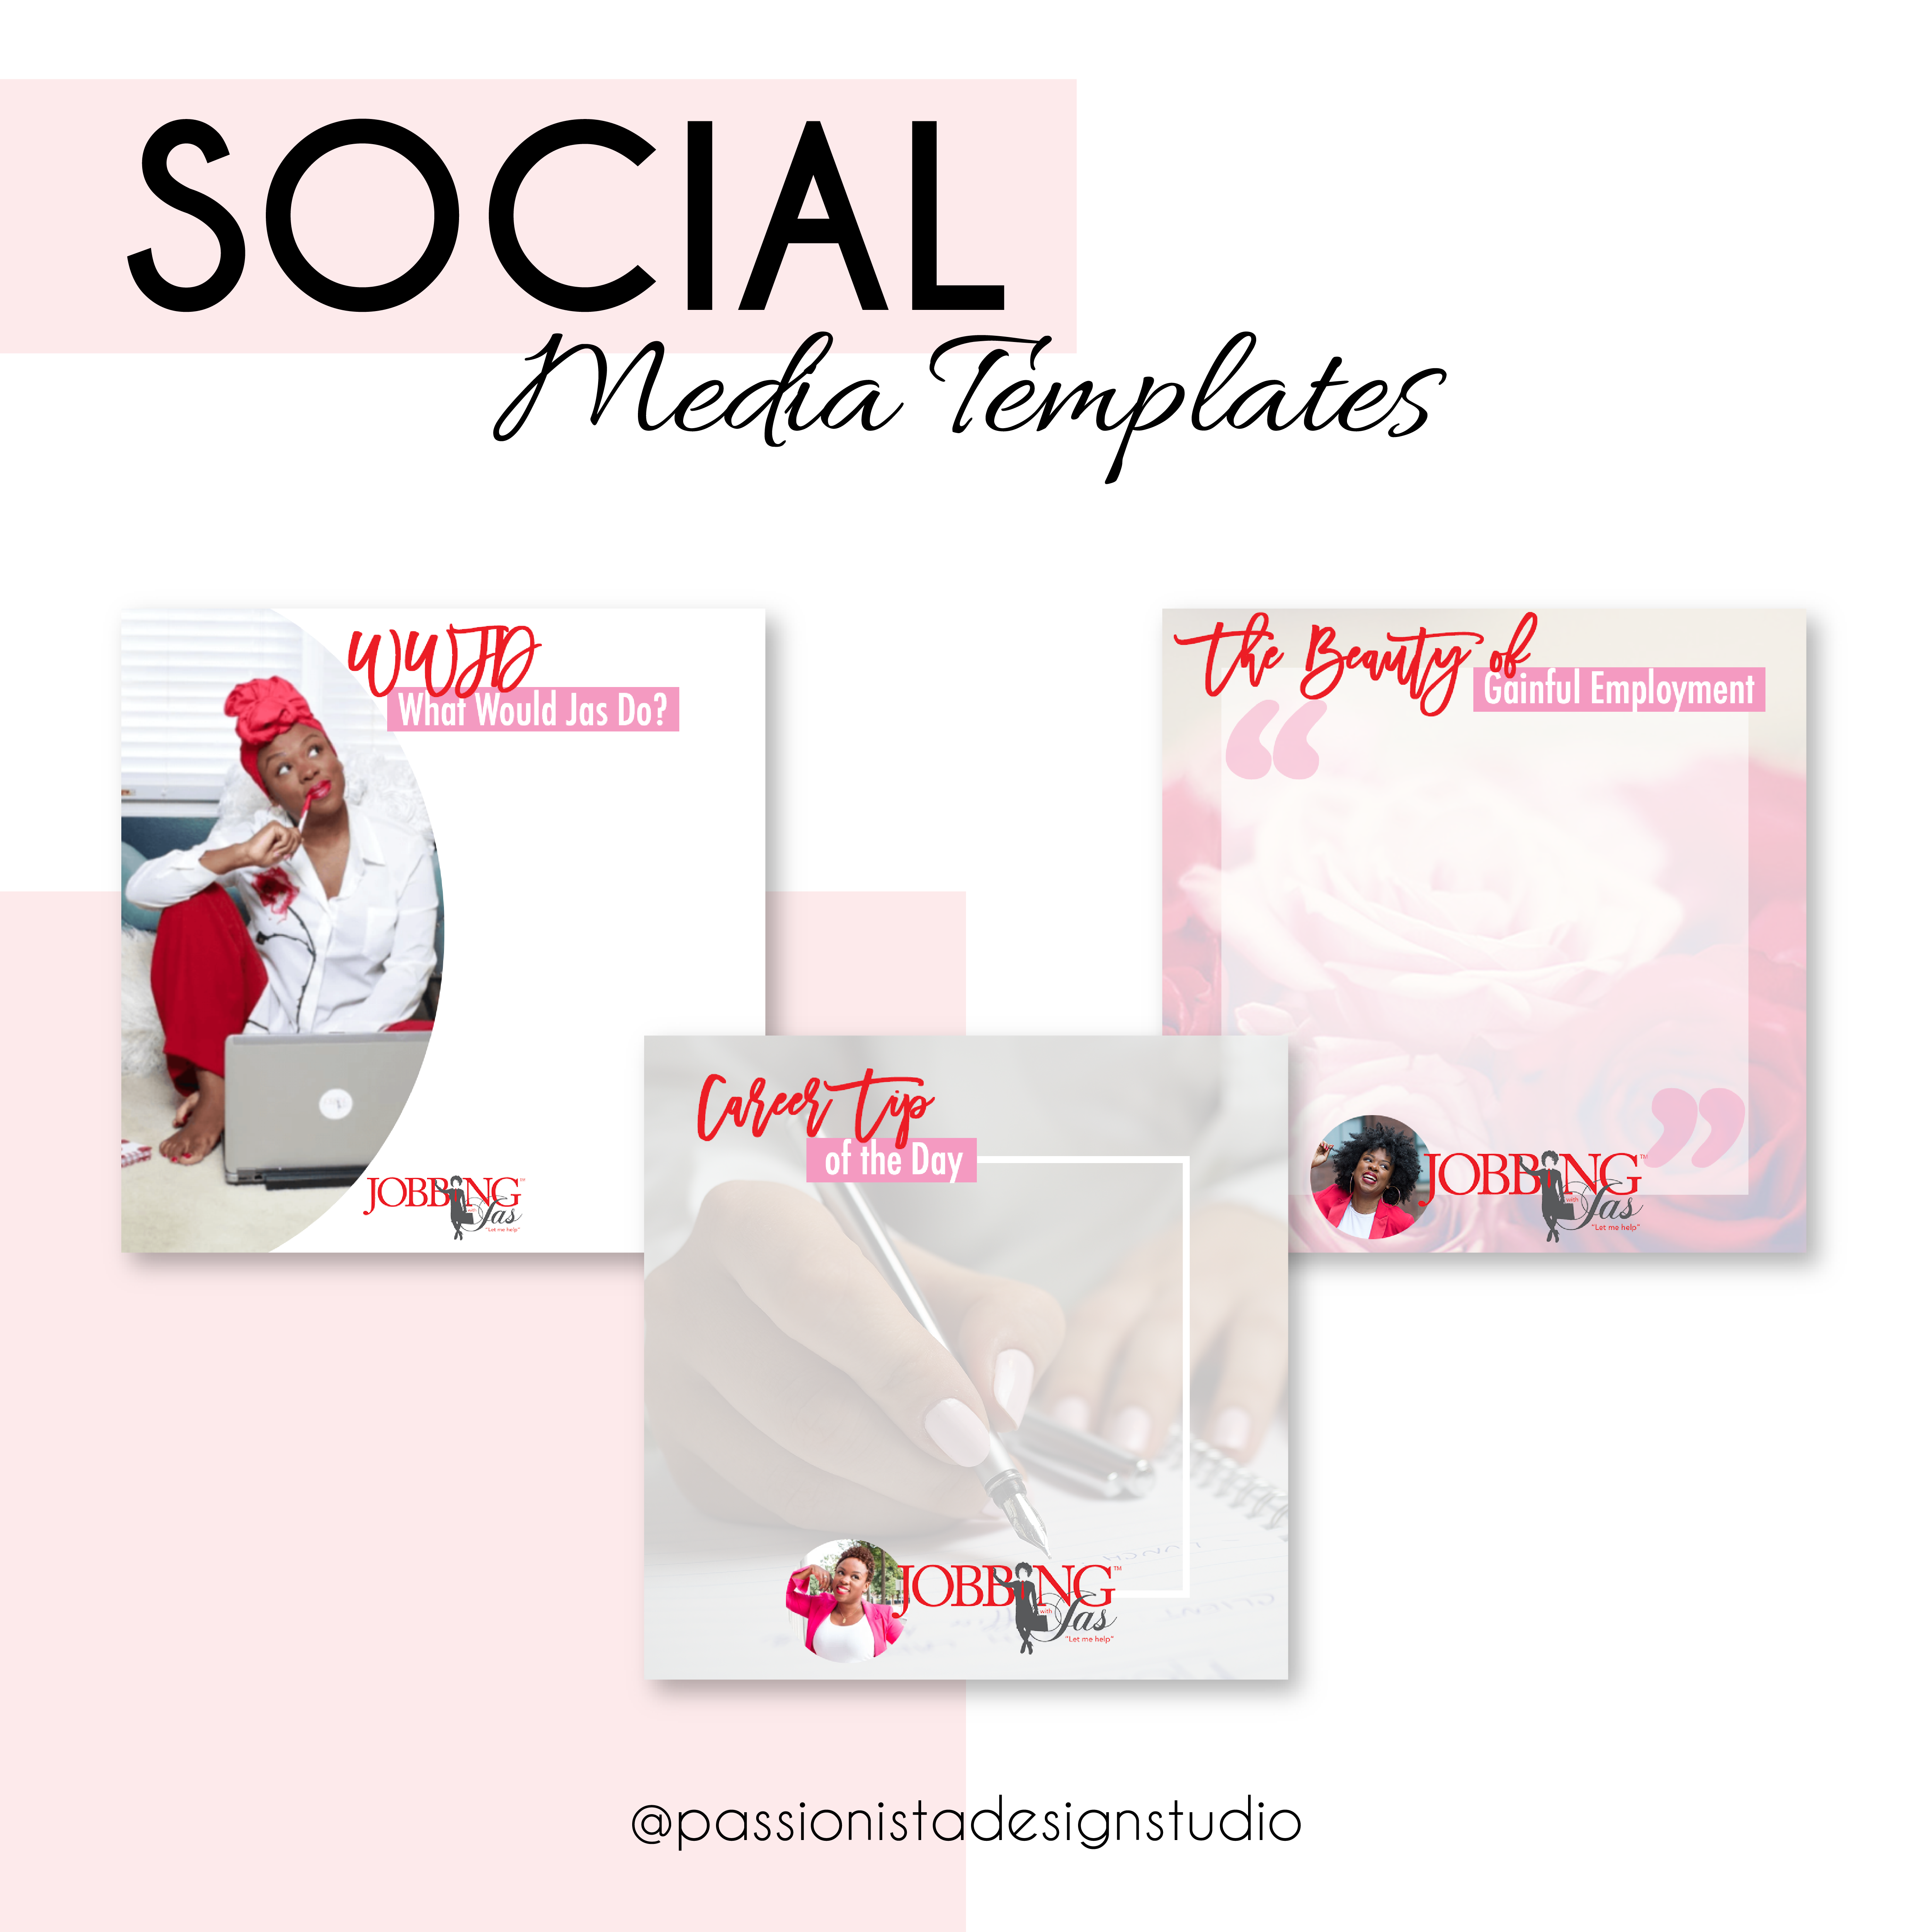 Social Media Templates Are Lifesavers If Youre Like Me And Are So